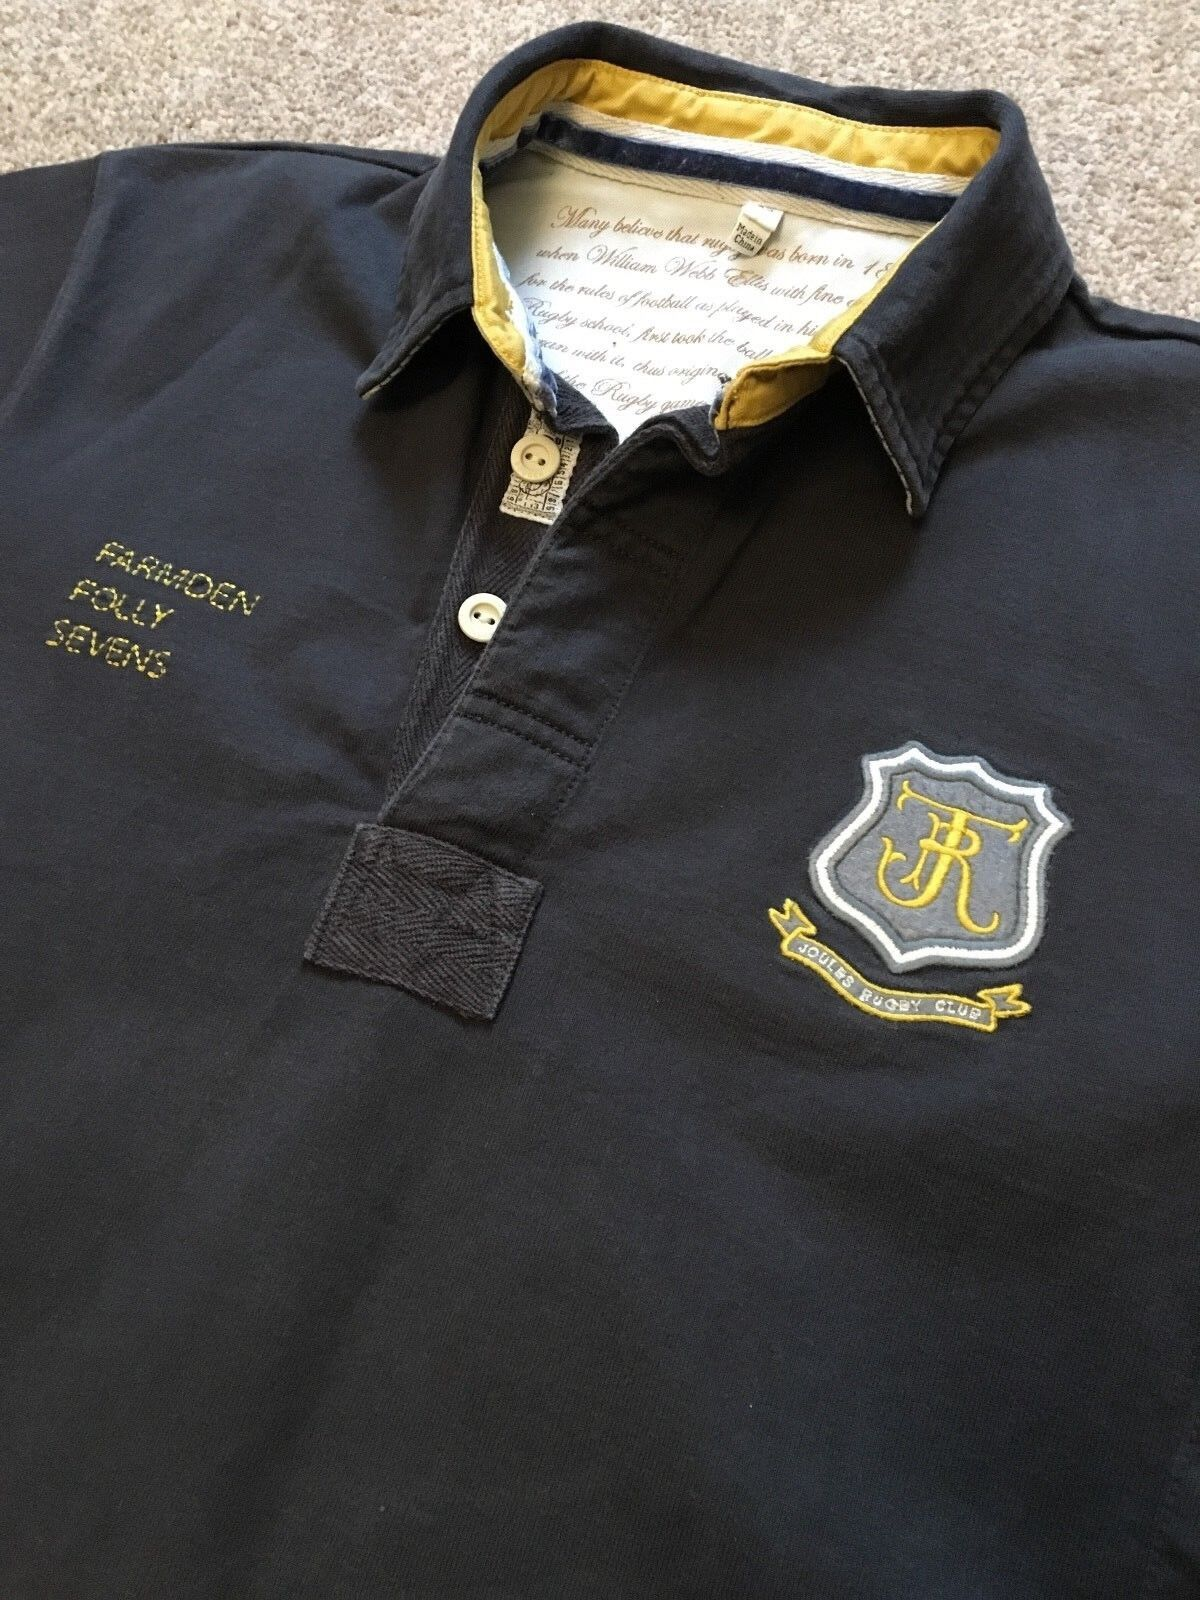 GORGEOUS JOULES CRESTED COLLEGE STYLE RUGBY SHIRT XS EXTRA SMALL